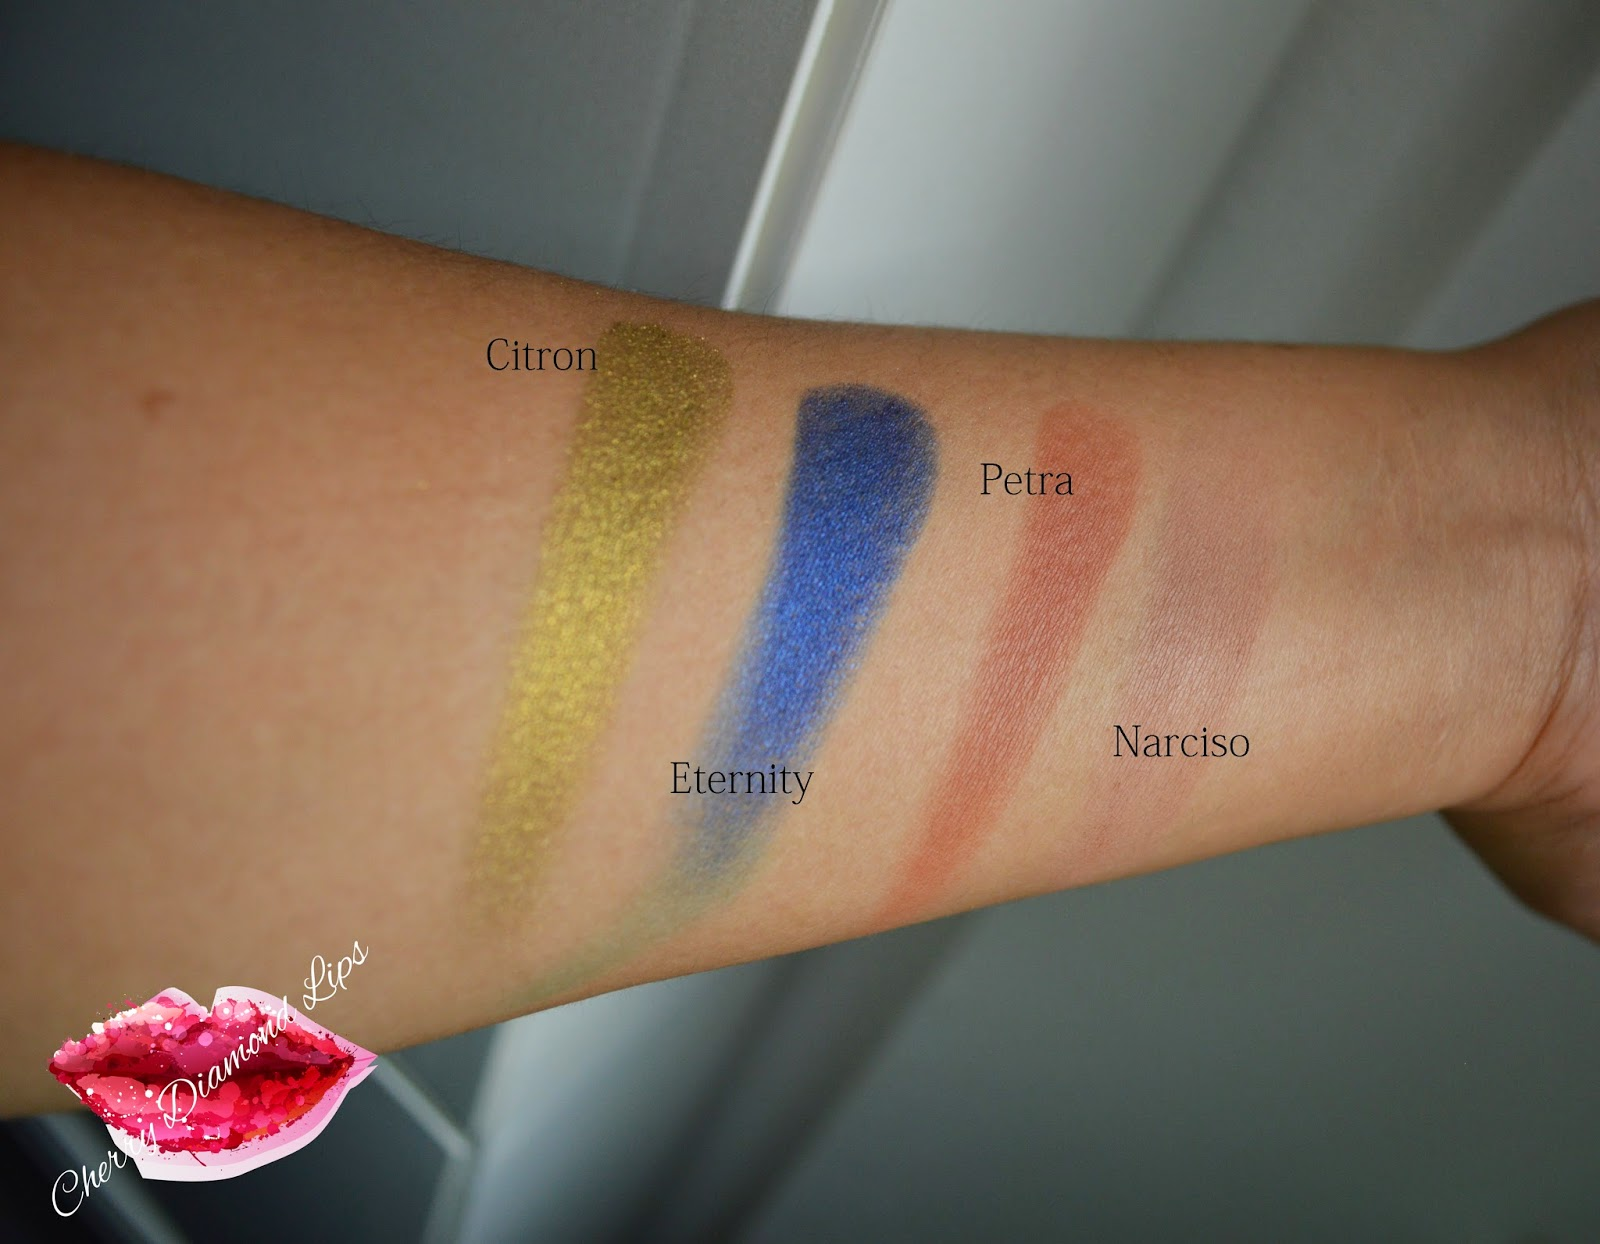 Genesis, Nabla Cosmetics, Citron, Eternity, Petra, Narciso Swatches